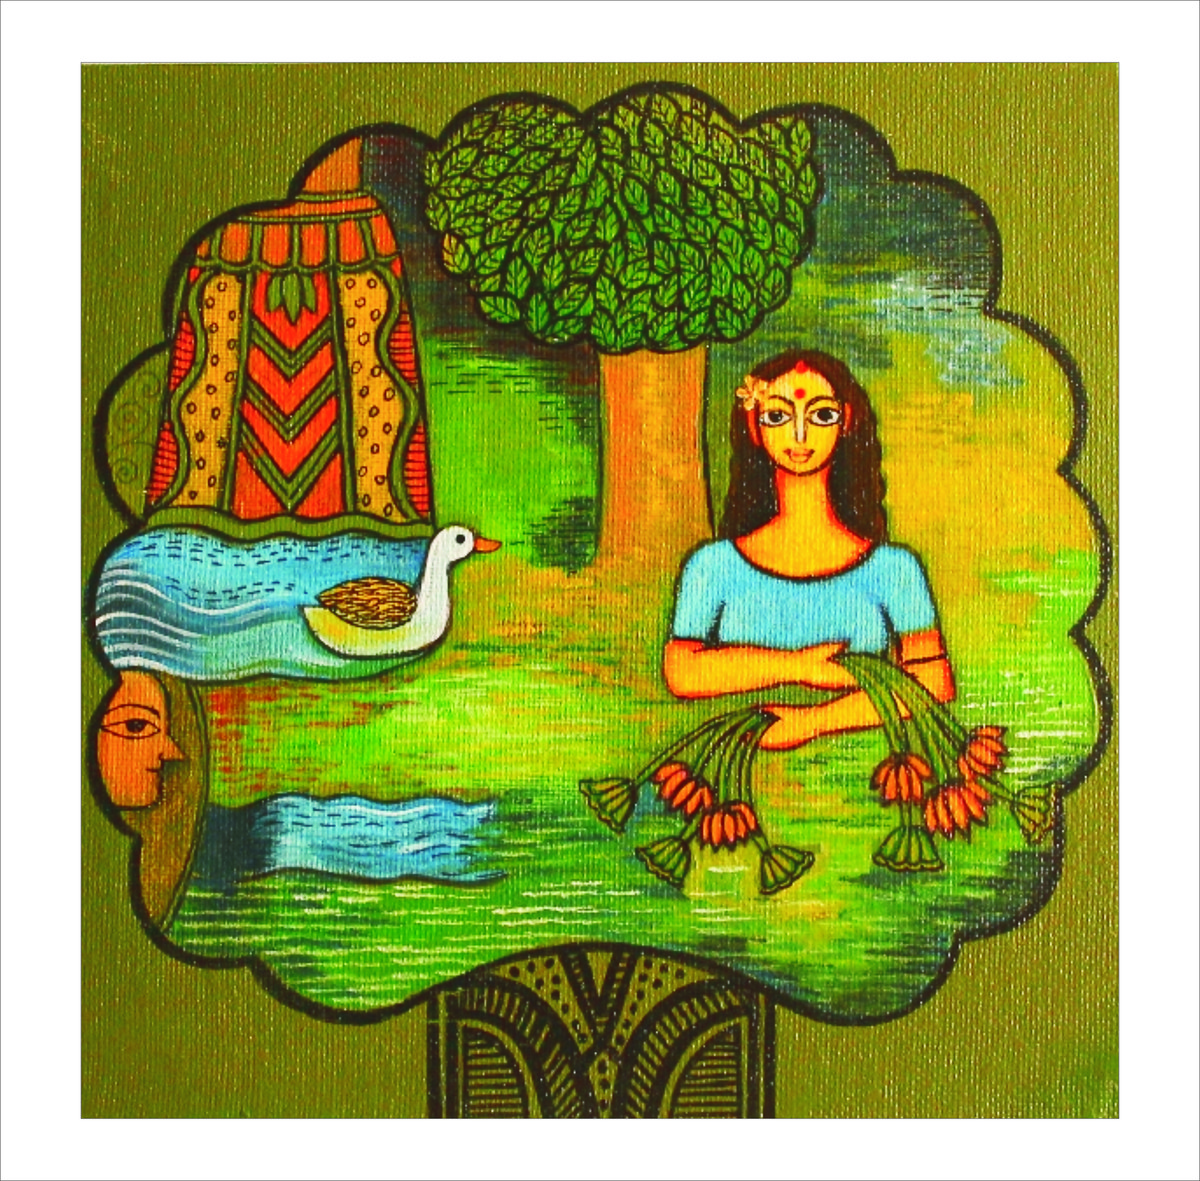 Grihasta by Meenakshi Jha Banerjee, Expressionism Painting, Canvas on Board, Green color